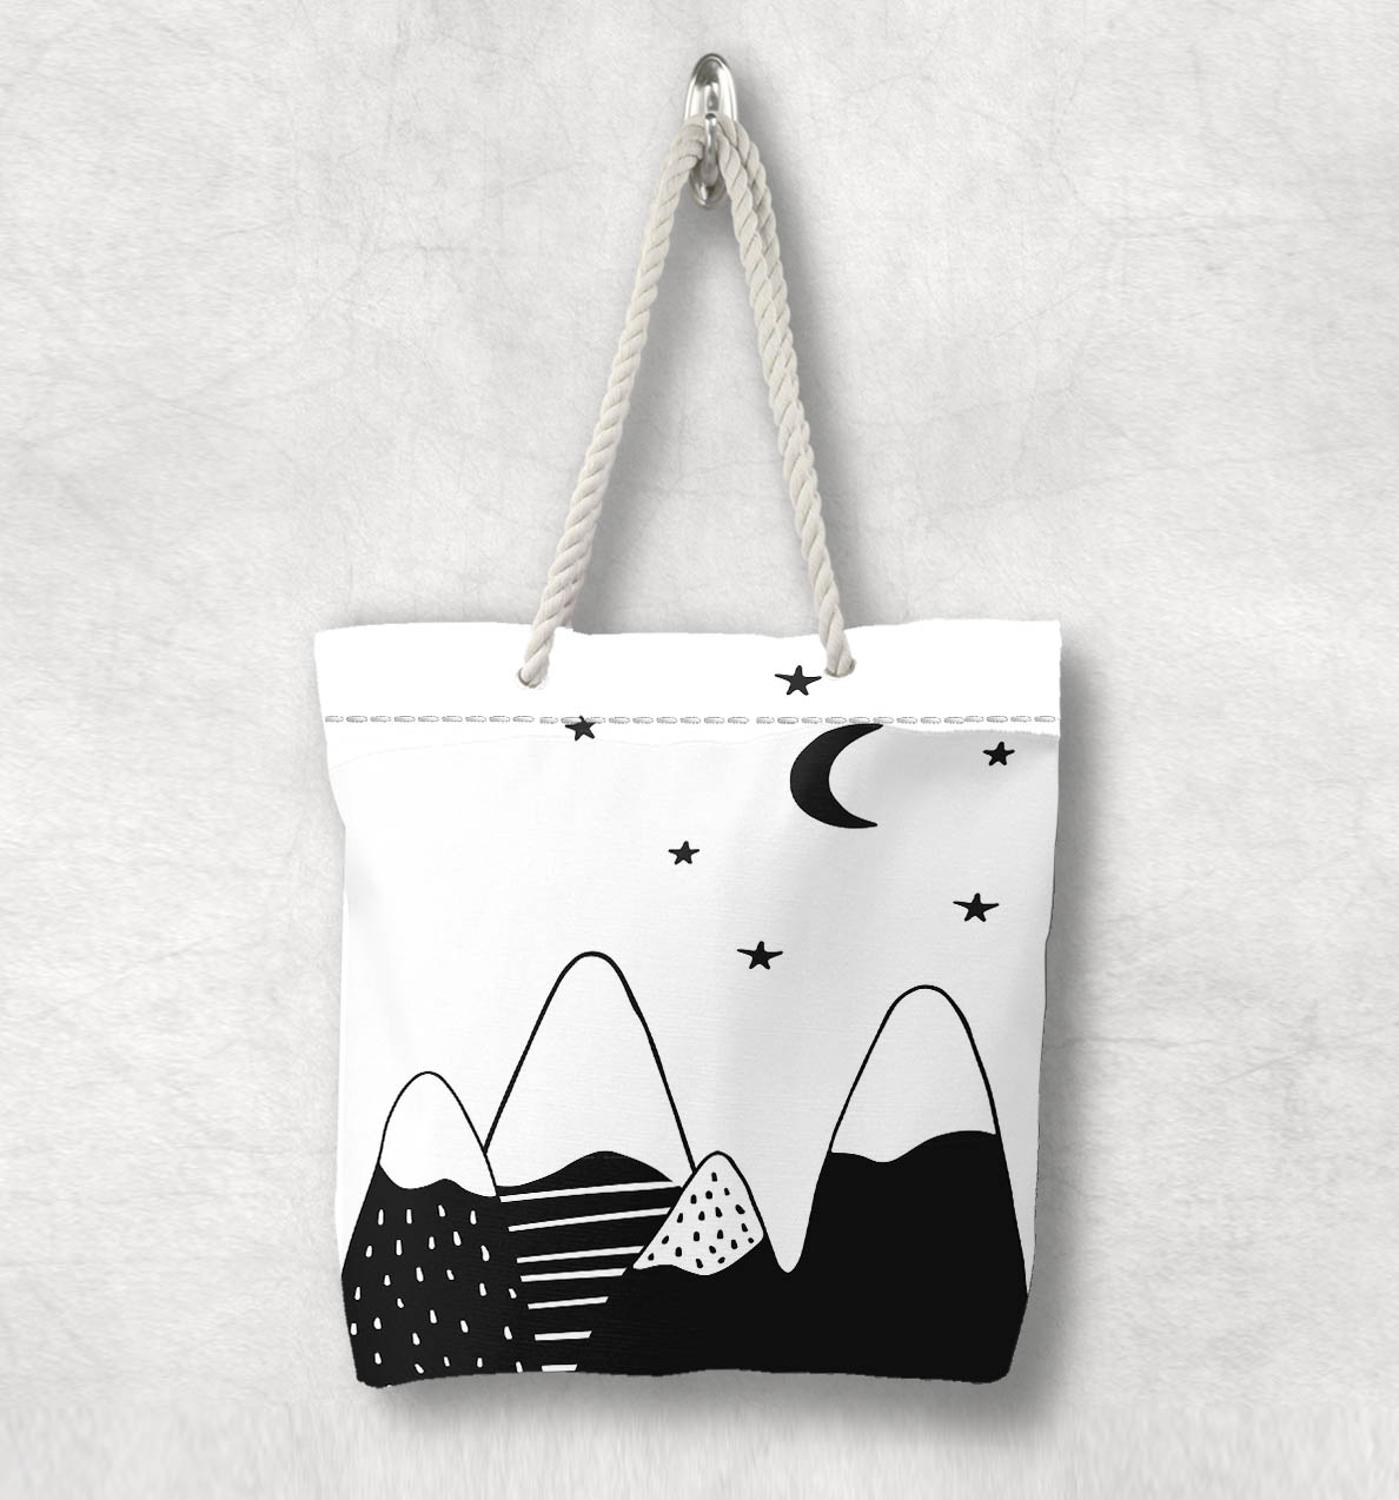 Else Black White Mountain Stars Moon  Scandinavian White Rope Handle Canvas Bag  Cartoon Print Zippered Tote Bag Shoulder Bag